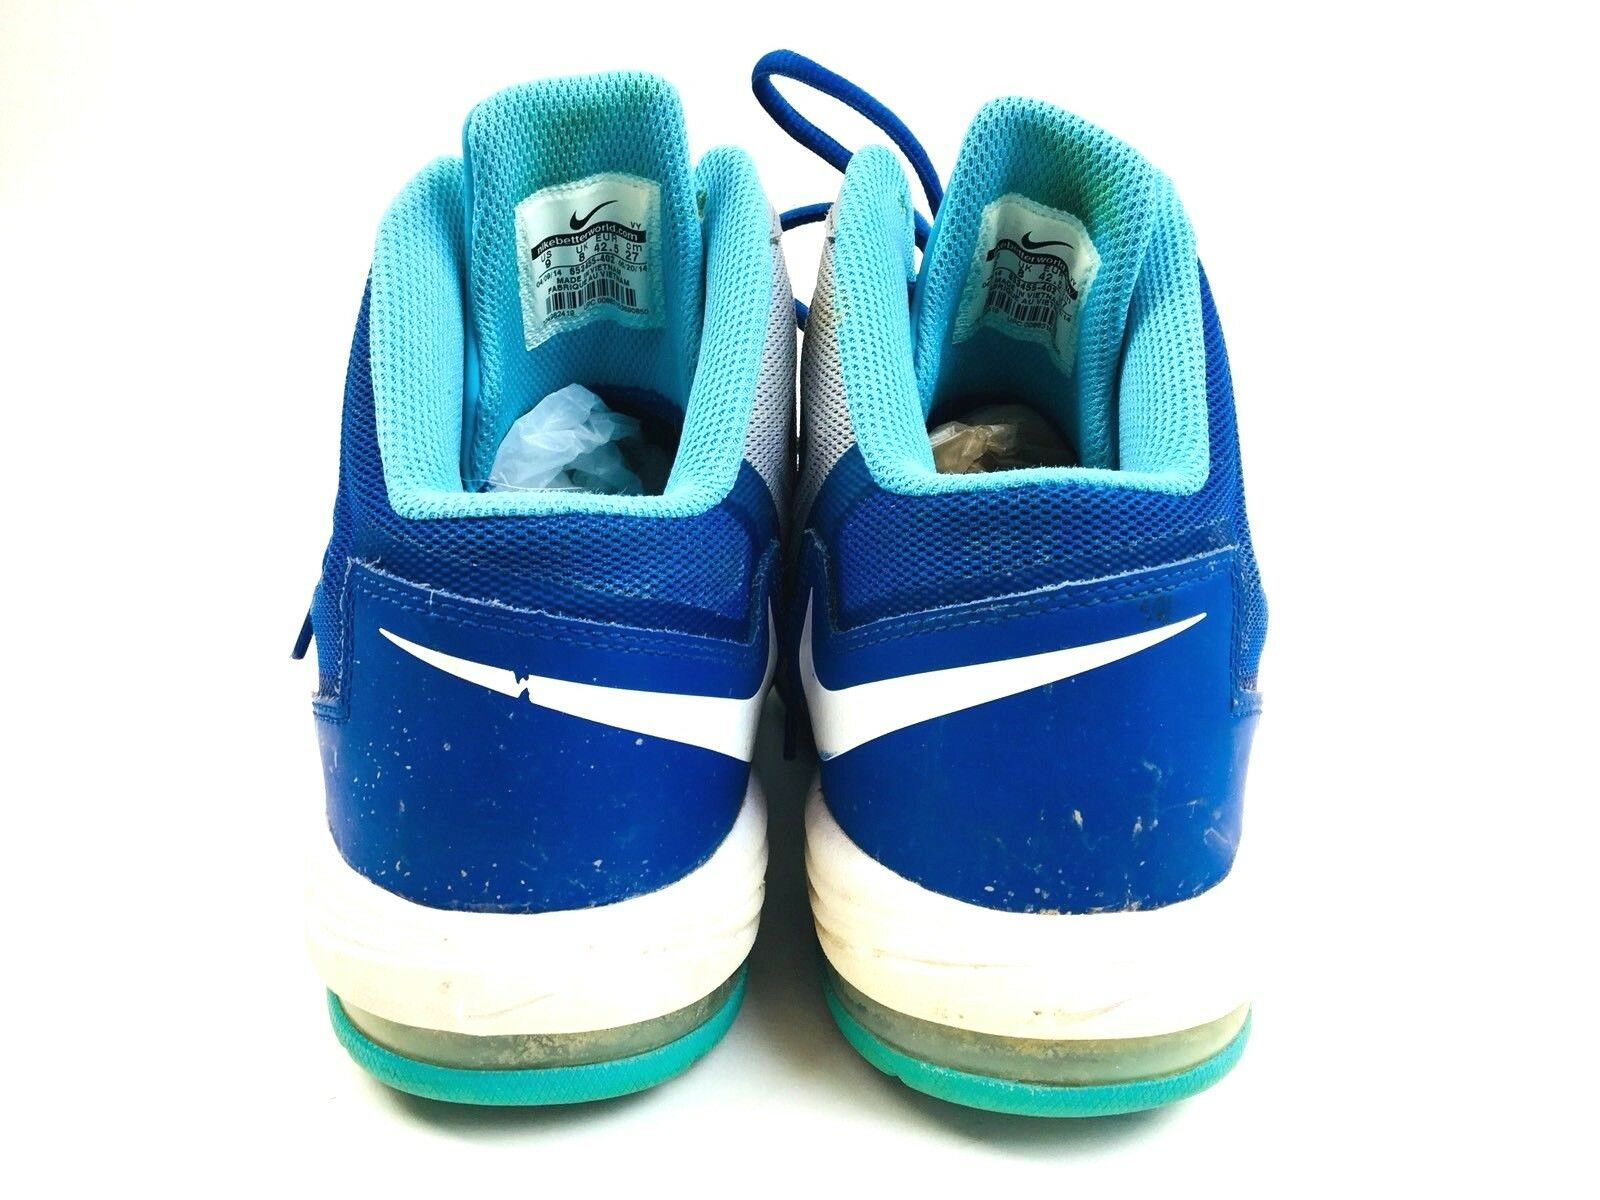 chaussures chaussures nike air max chaussures nike chaussures air max chaussures nike bleu basket taille 9 f8735f